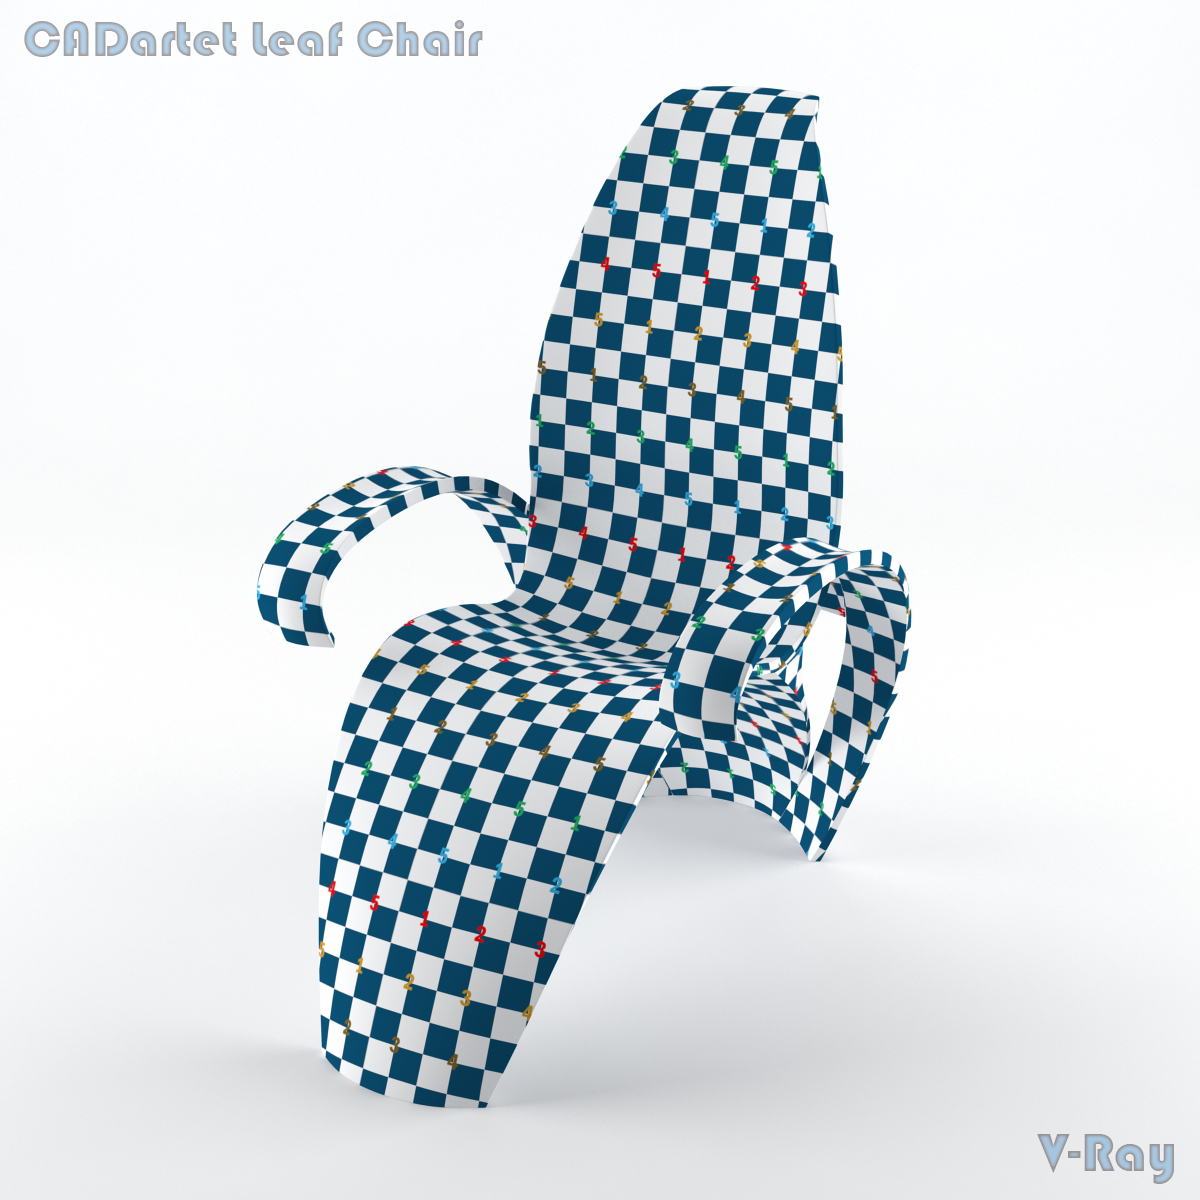 cadartet artet design leaf chair cadeira folha checker map